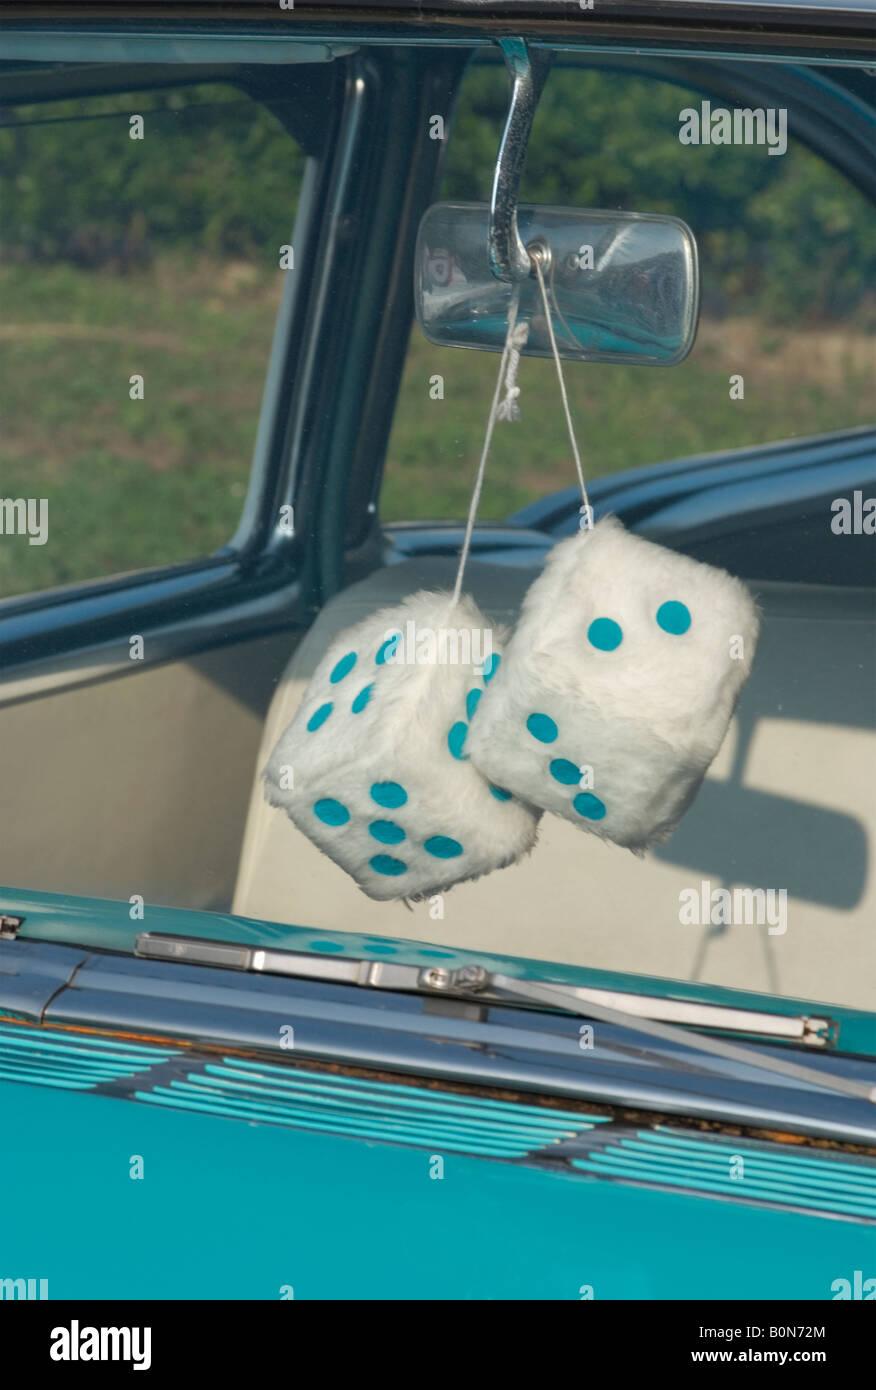 Fuzzy Dice Hanging From Rear View Mirror - Stock Image